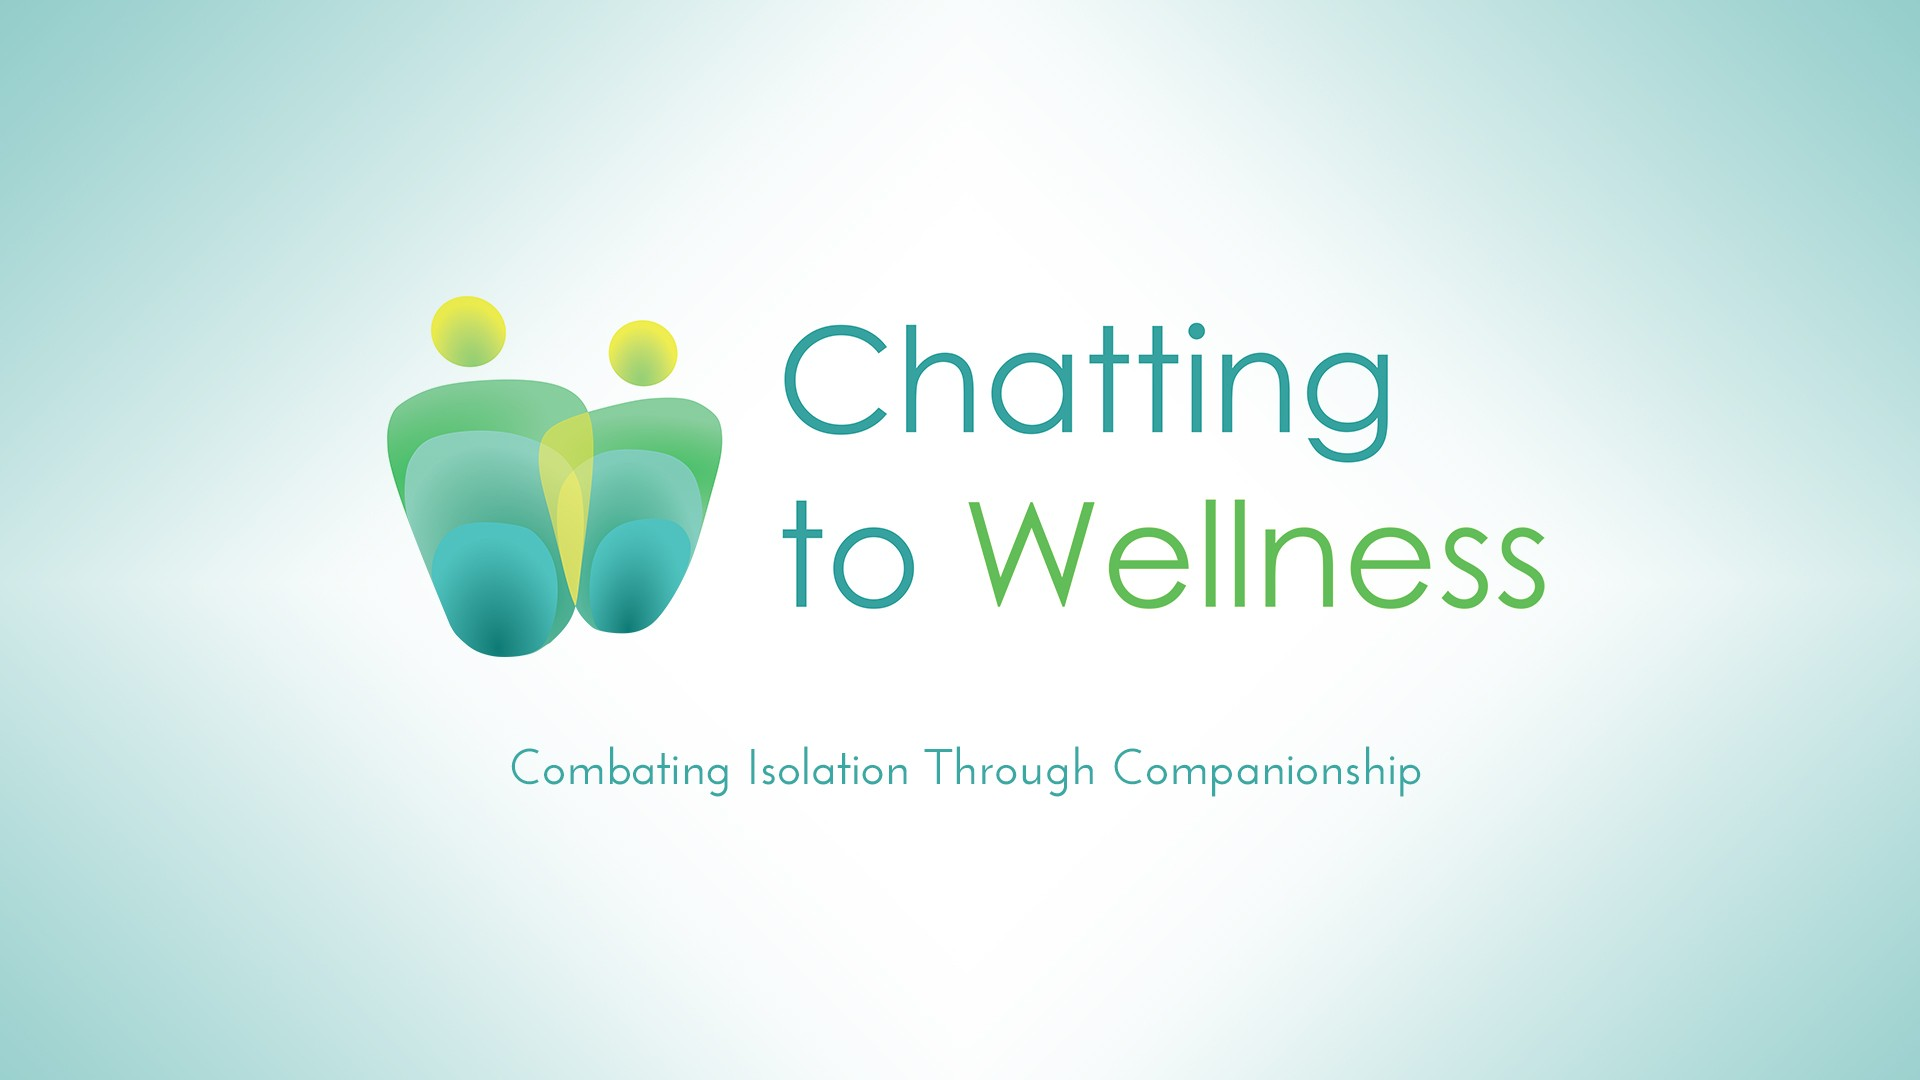 Chatting to wellness